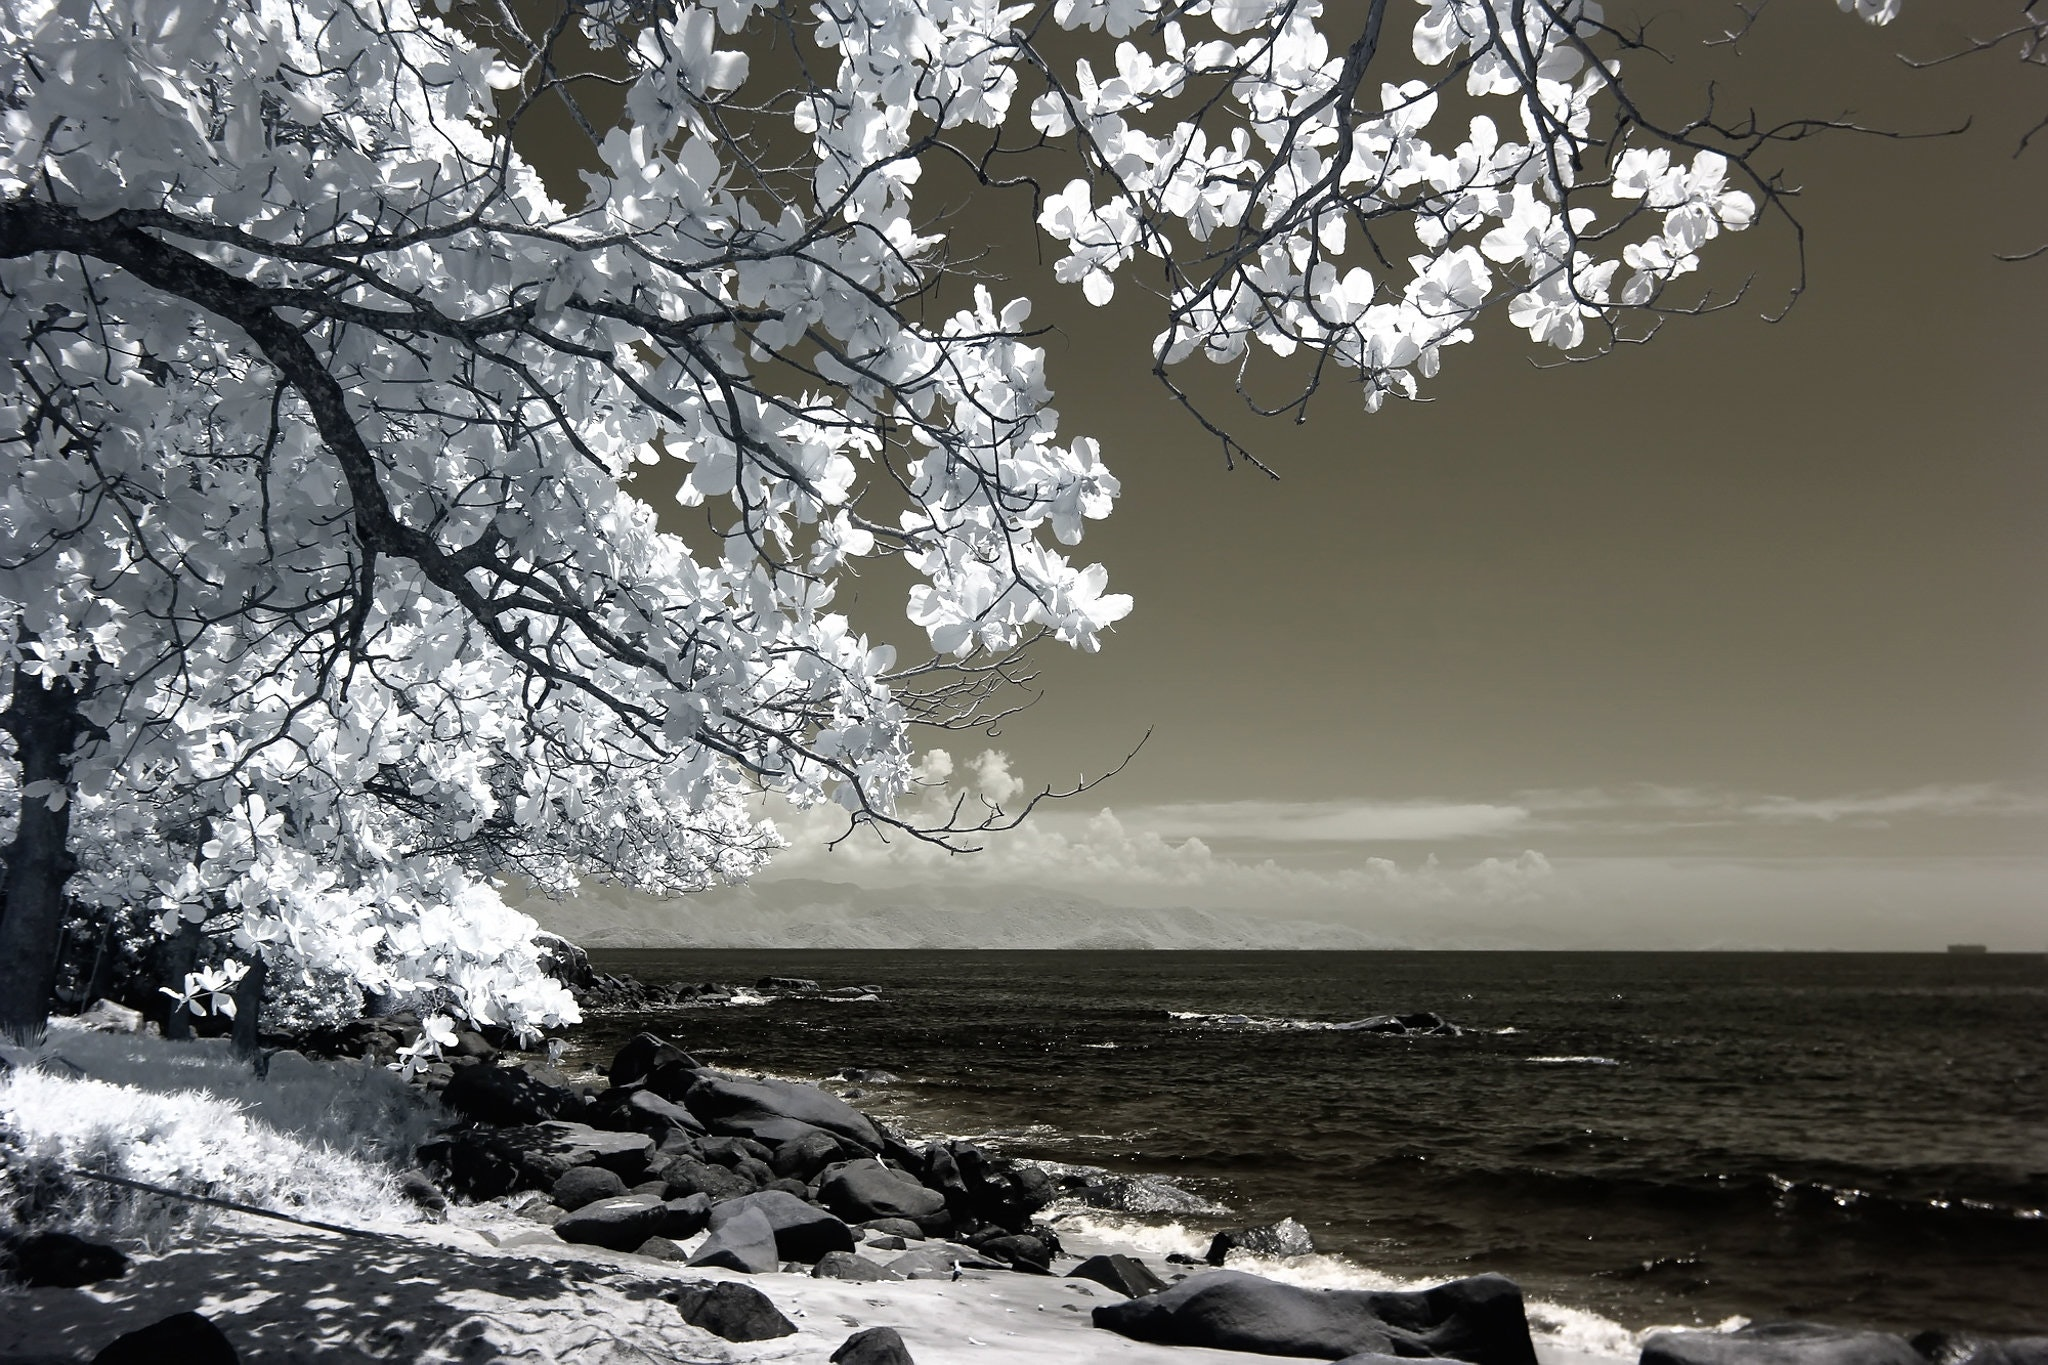 White Tree Beside Seashore Photo, Amazing, Outdoors, Weather, Waves, HQ Photo